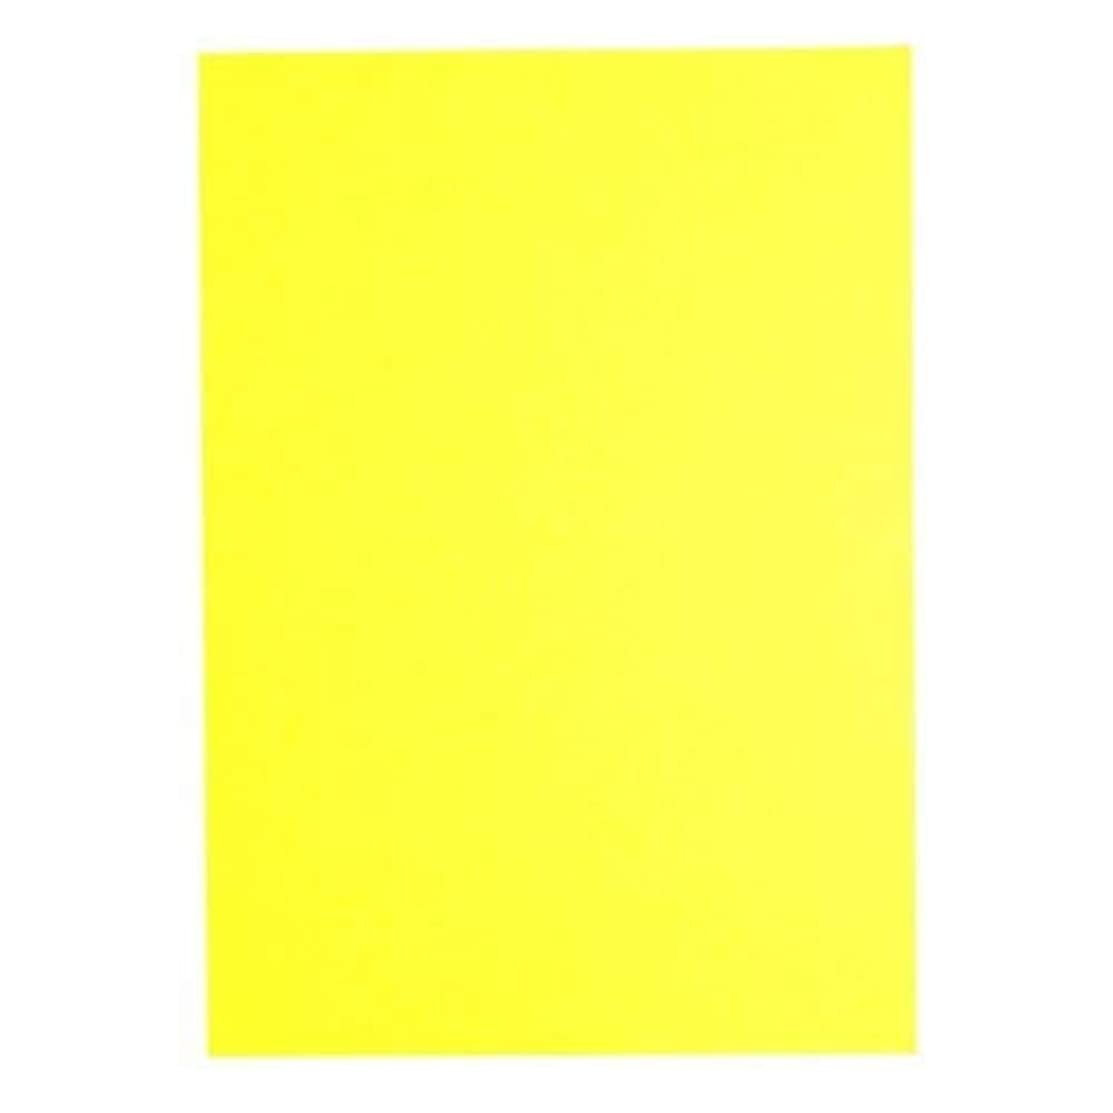 250 Yellow Dark Sheets Dye Colored Papers 80 GSM Craft Project Home Wokplace Lightweight Construction Home Workplace Office School